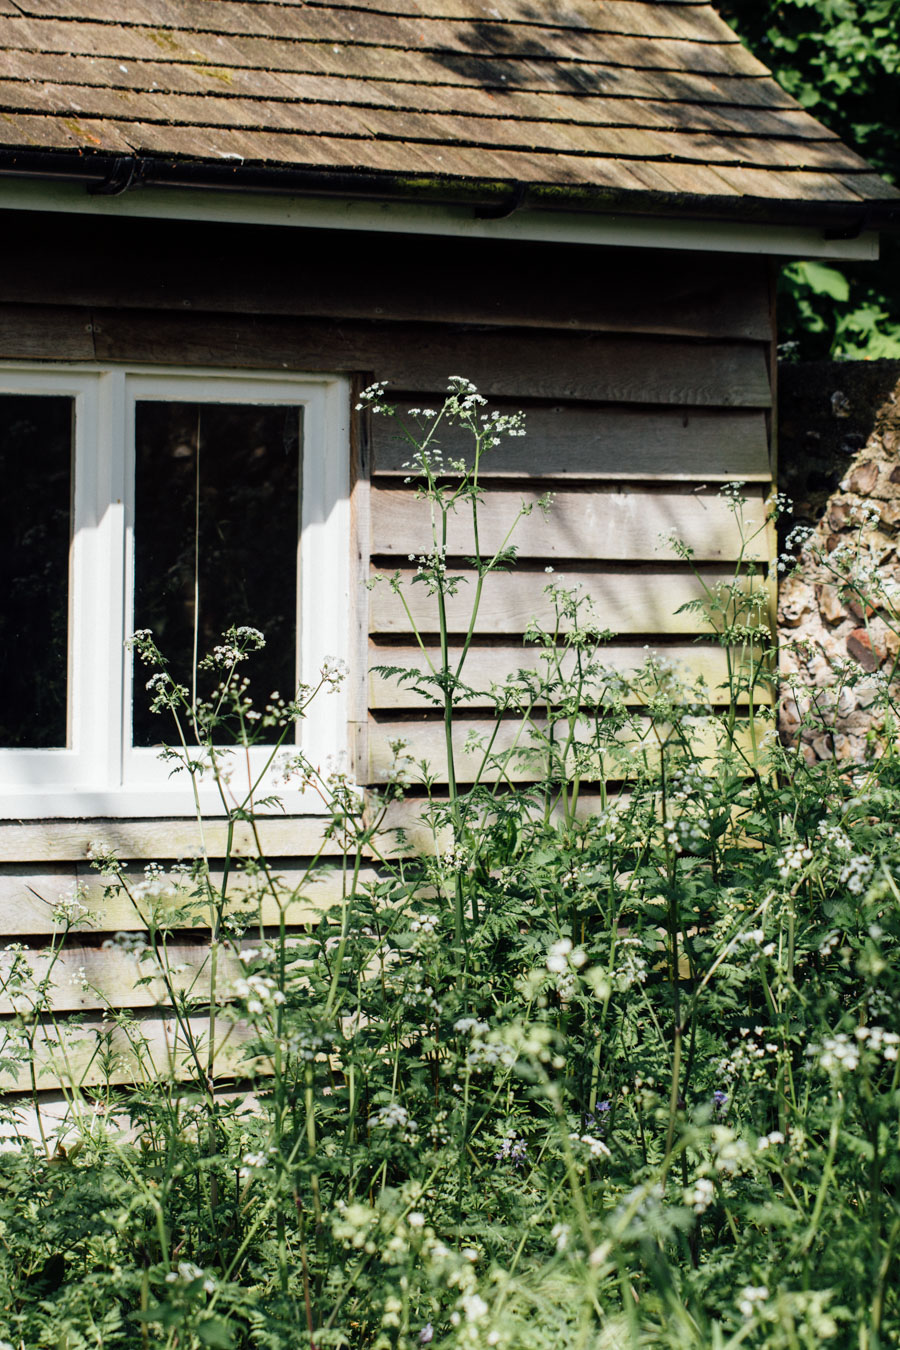 Virginia Woolf's Writing room Monks House